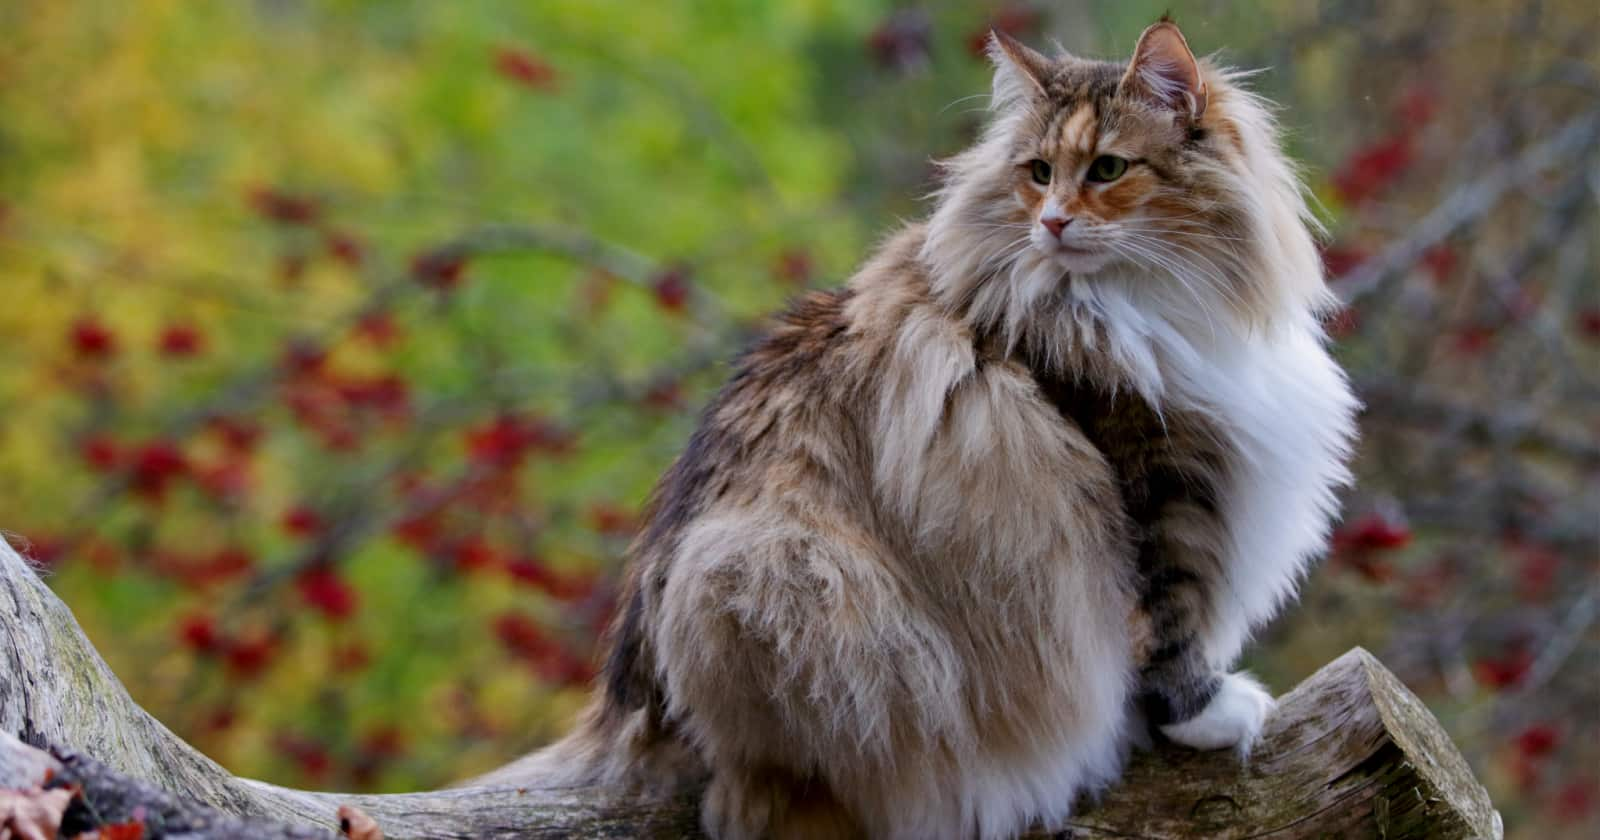 Curious about the largest cat breeds? While lions and tigers dominate in the wild, these 7 kitties are the biggest in the domestic cat world.